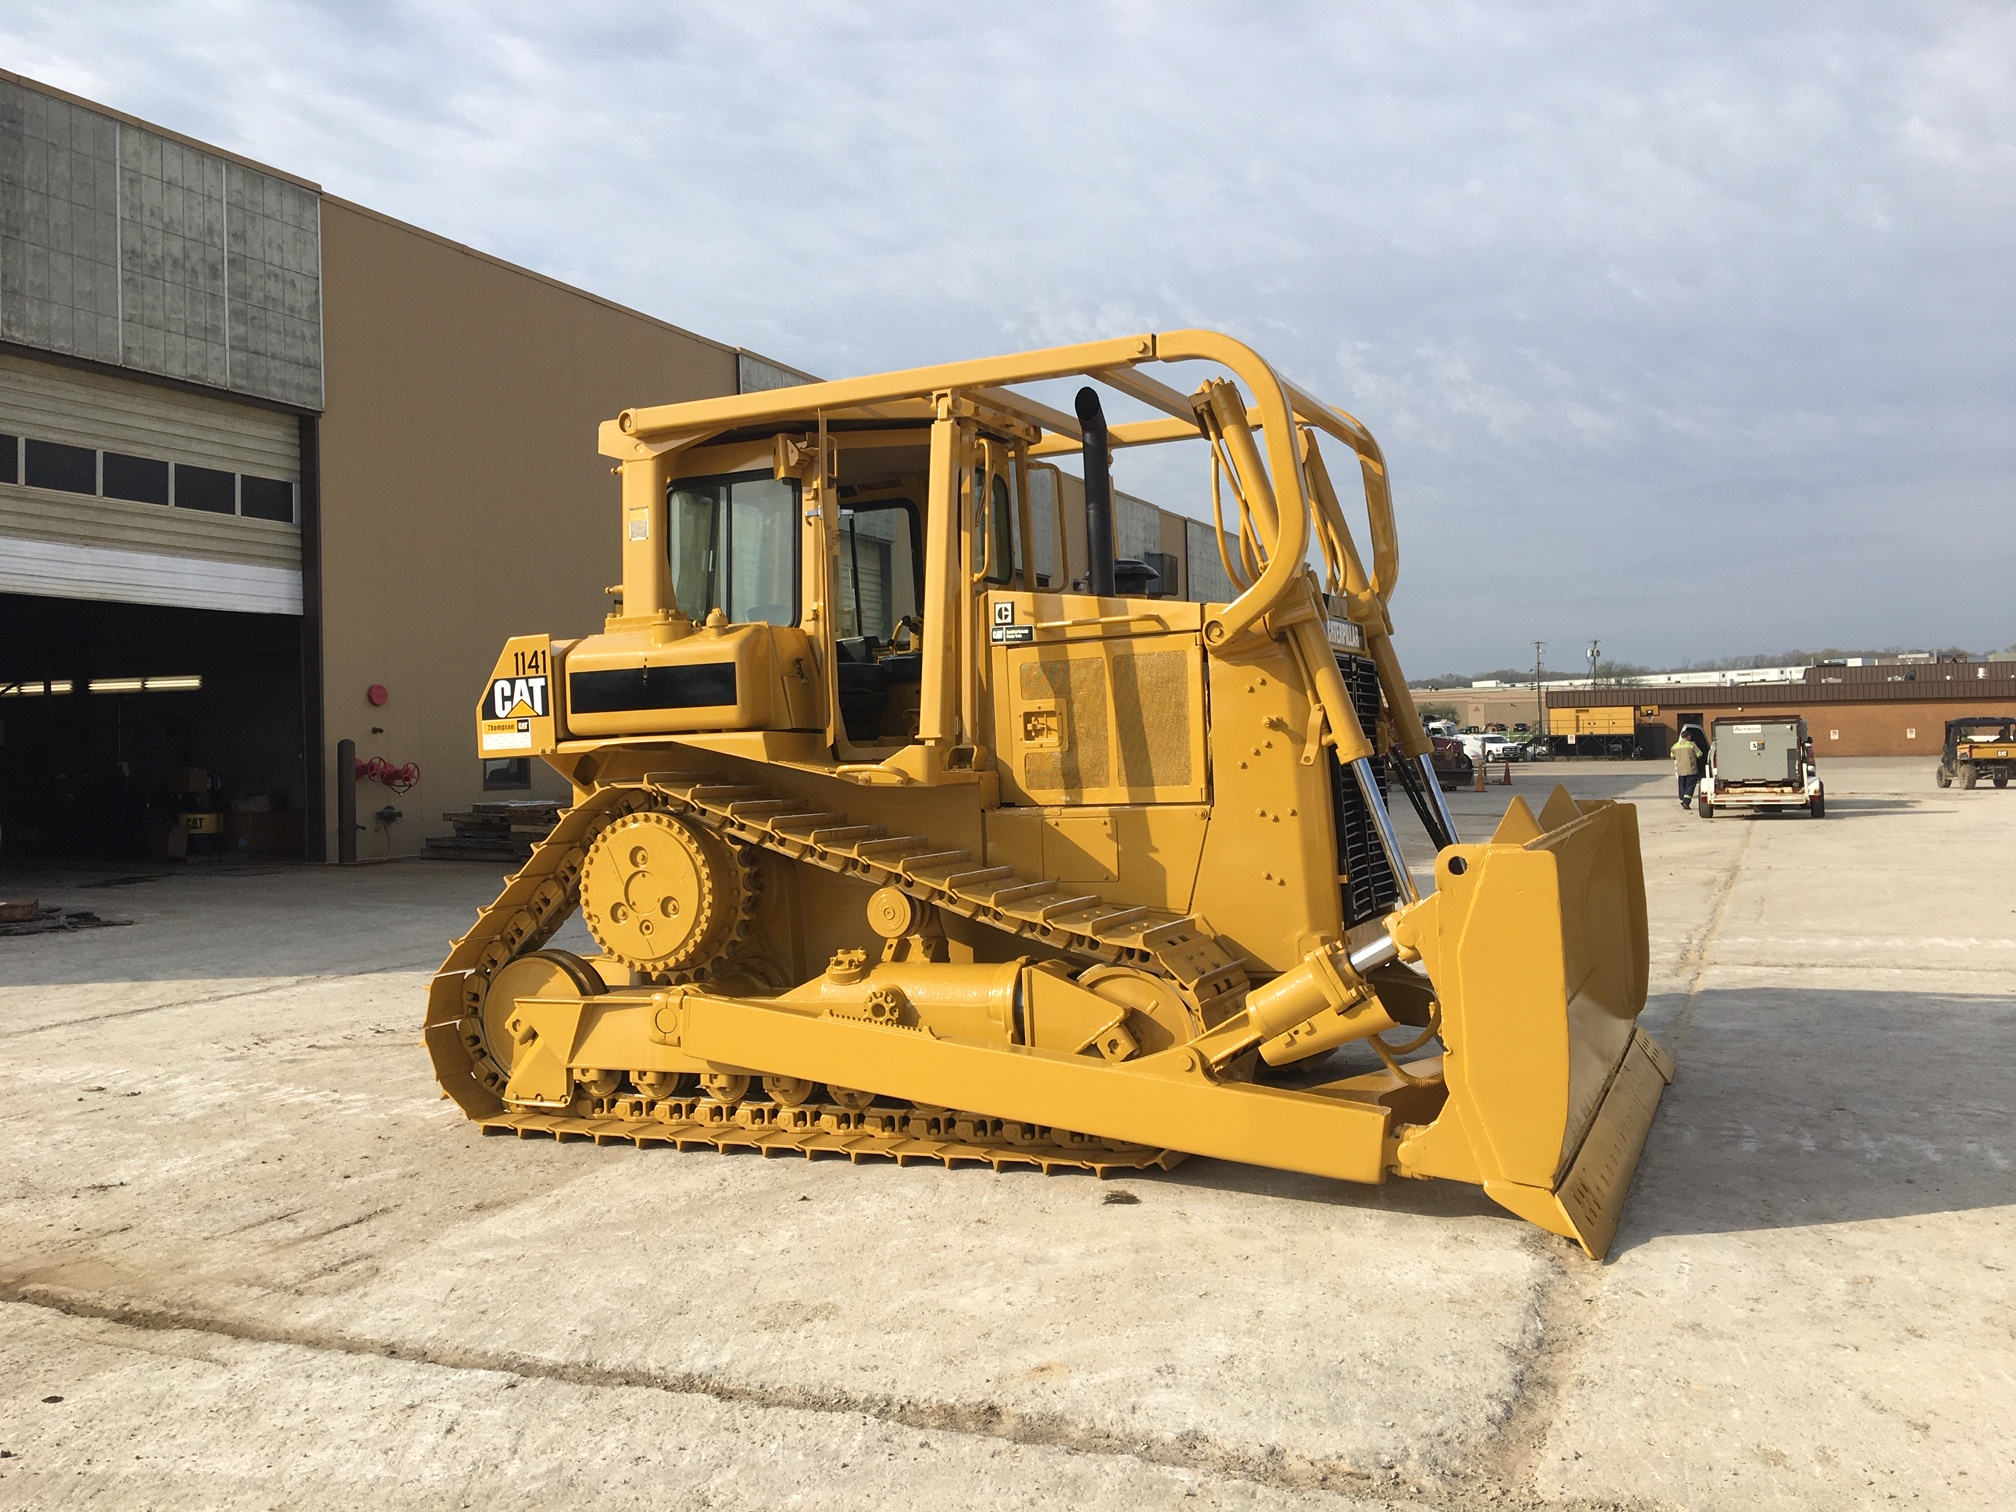 repainted caterpillar dozer